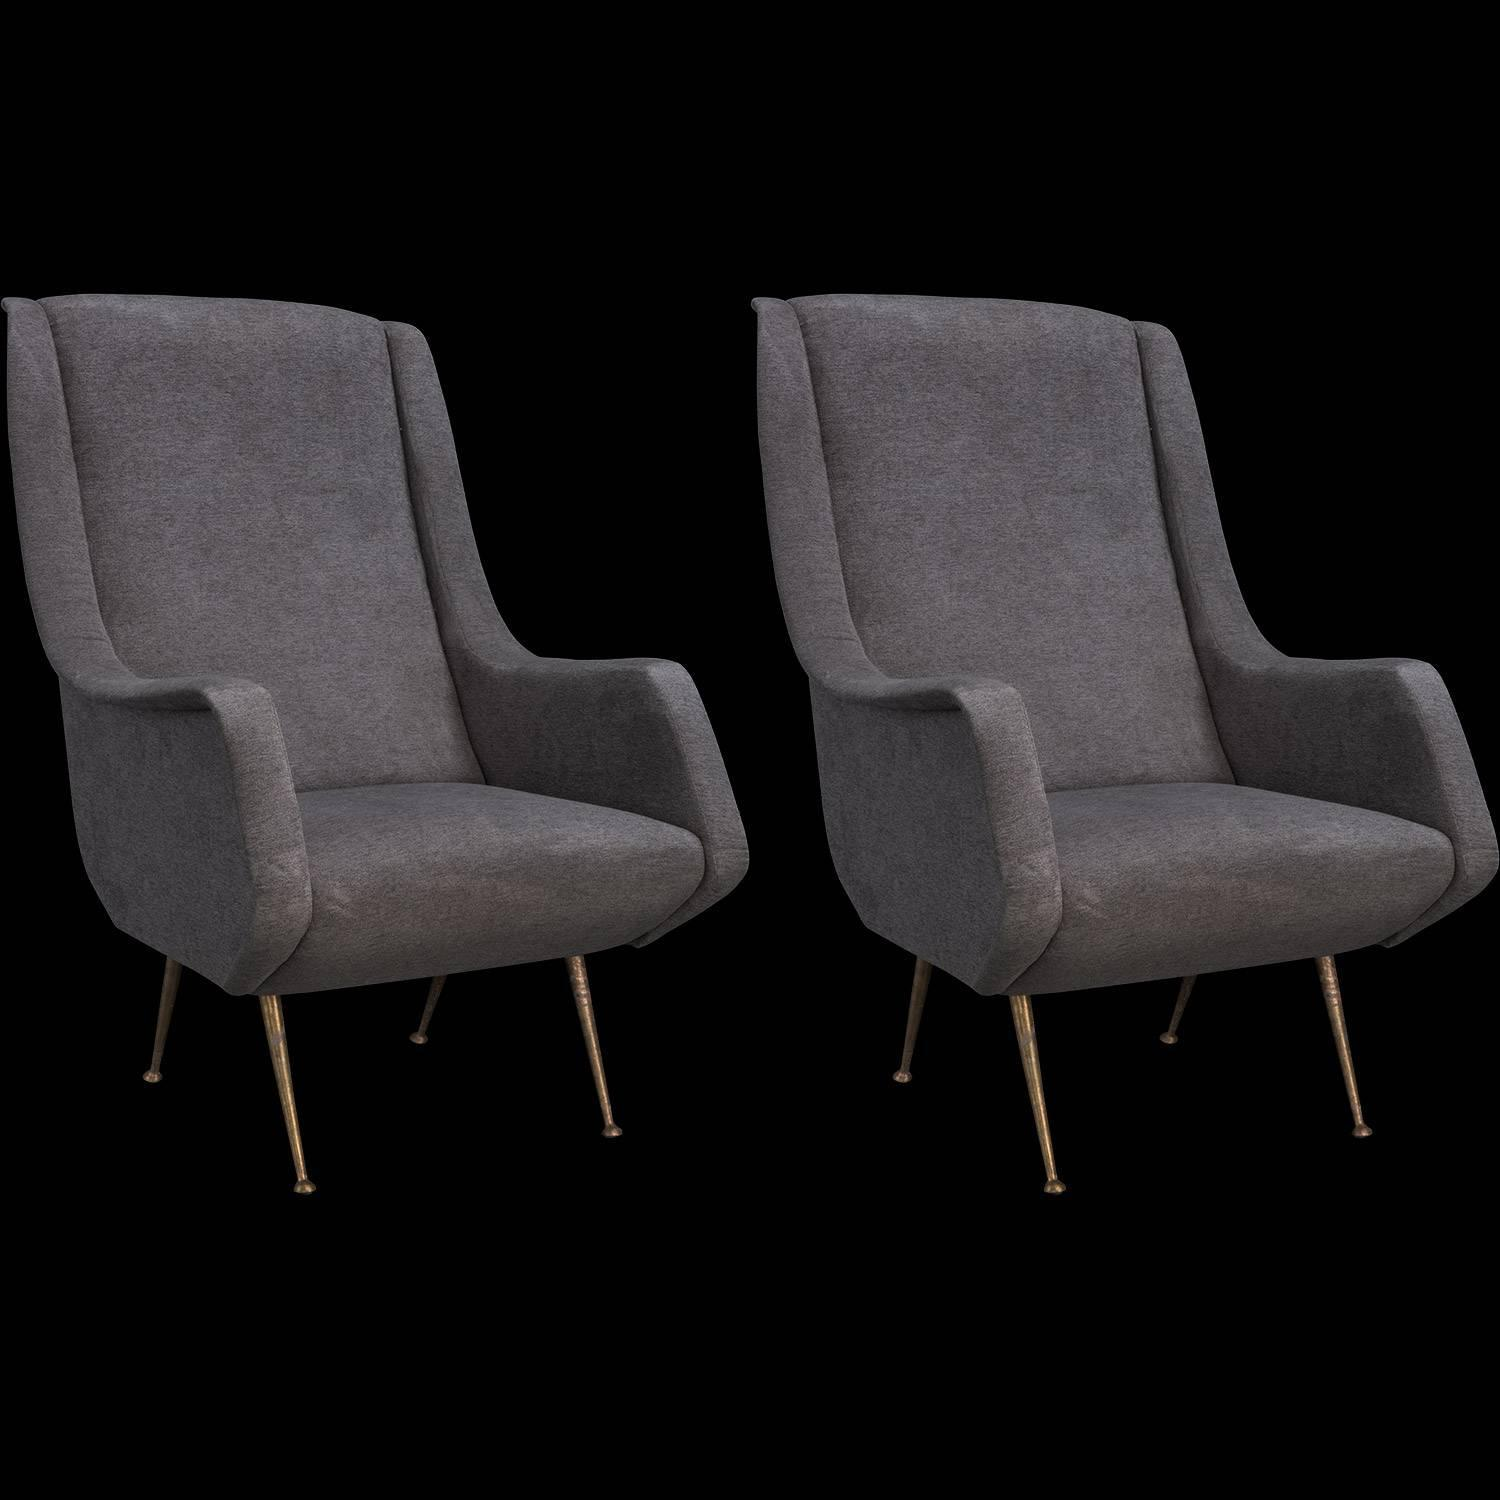 grey modern armchairs bad back chairs for home velvet and brass circa 1960